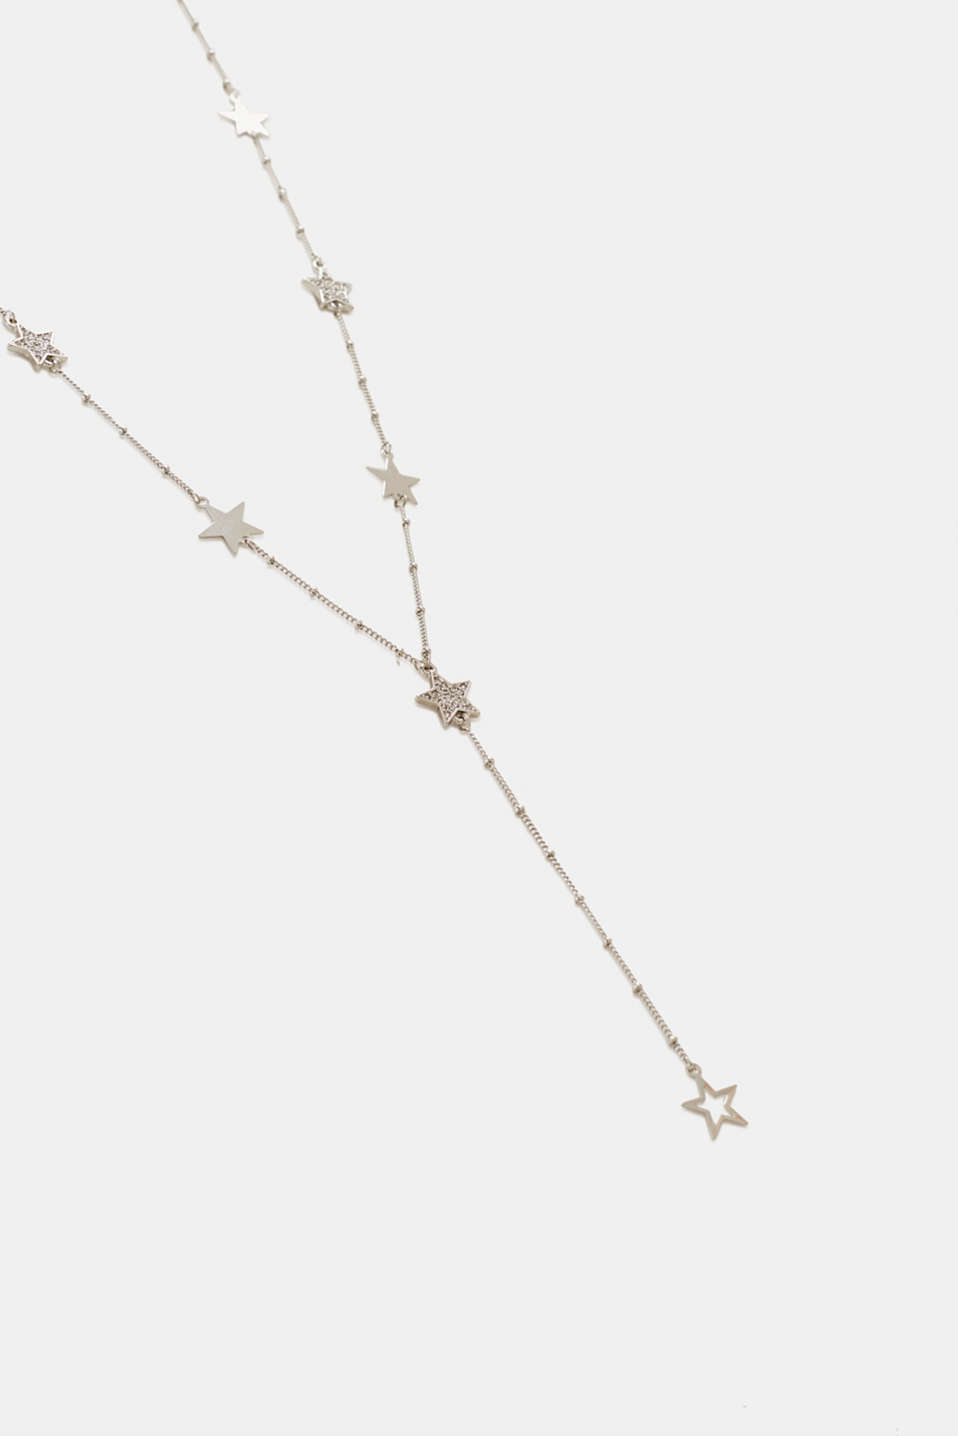 Y-shaped necklace with facet-cut stones, SILVER, detail image number 1